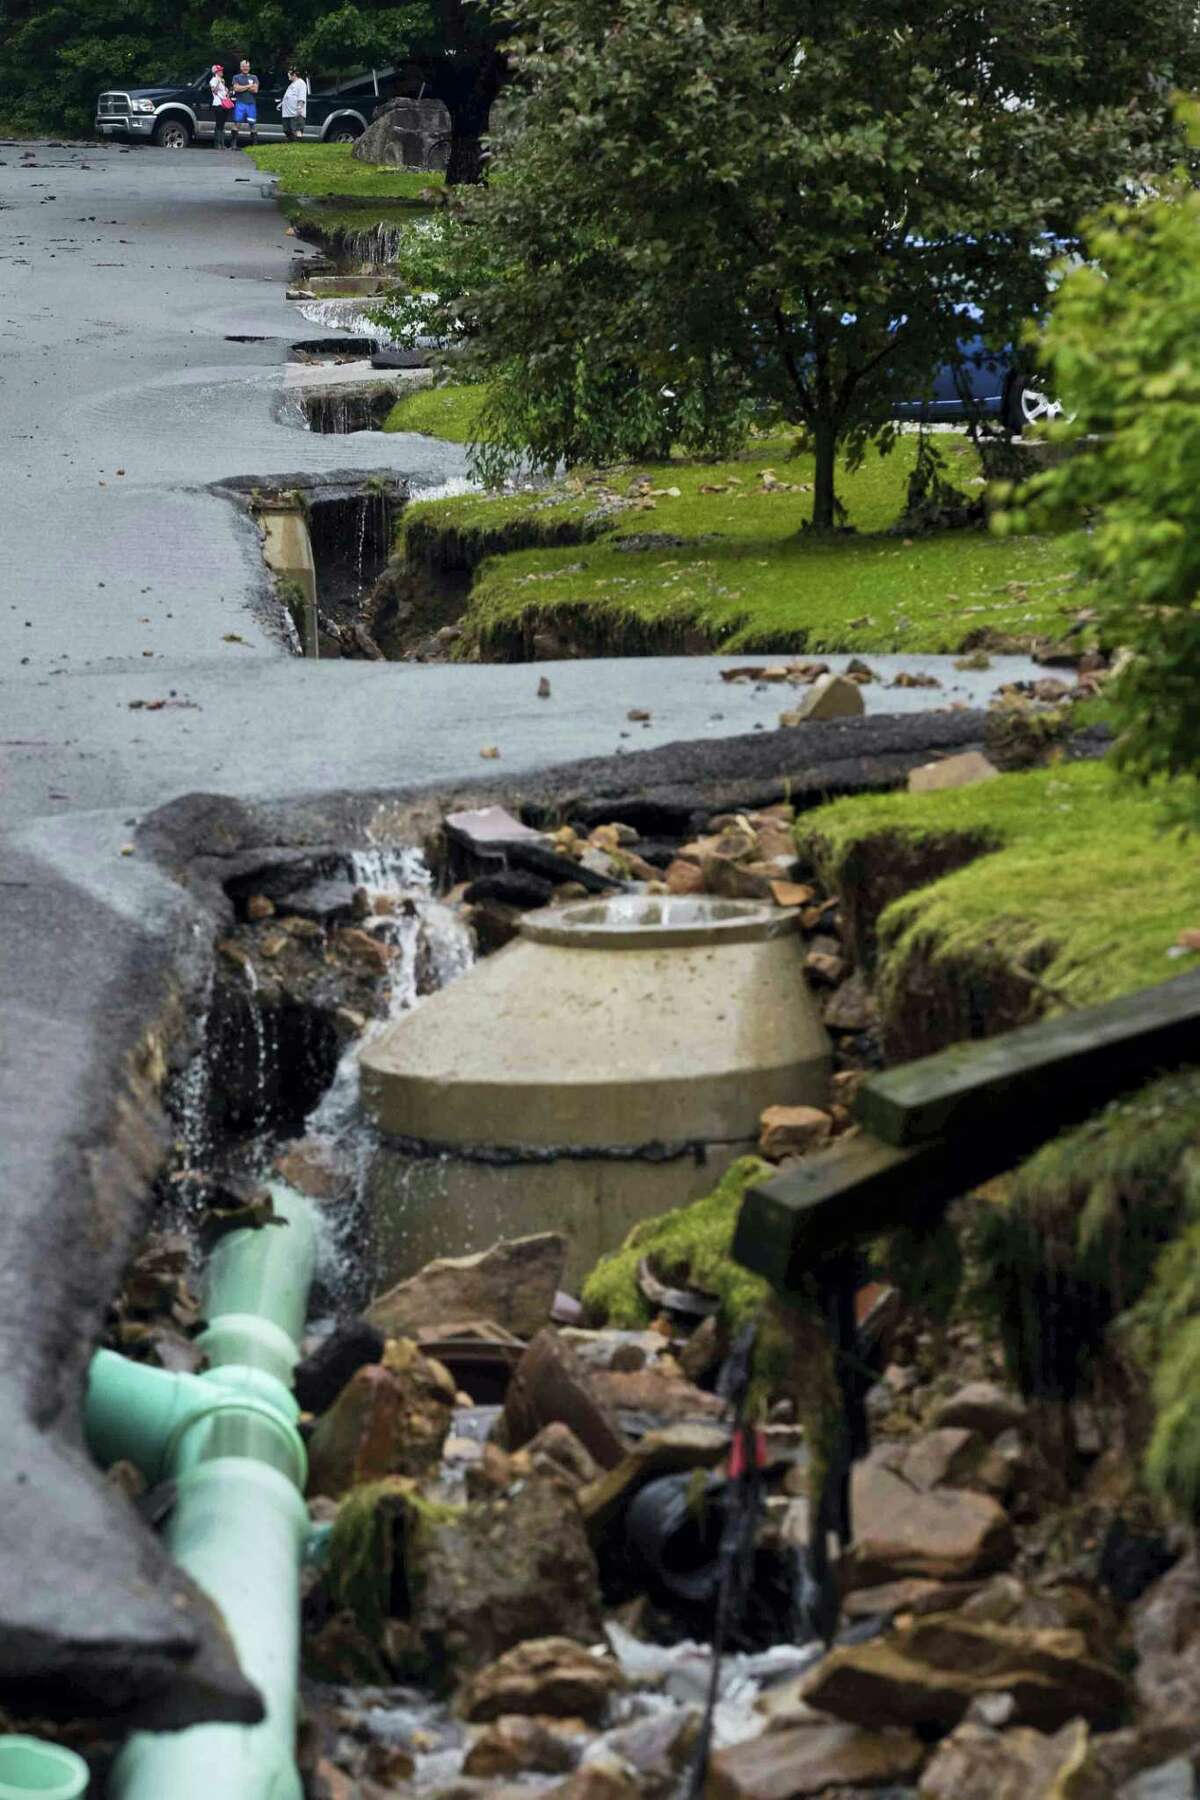 Exposed piping of city water and sewers systems lay bare after being exposed by the removal of front lawns and large portions of asphalt along Oakford Avenue by severe flood waters in Richwood, W.Va. on Friday.